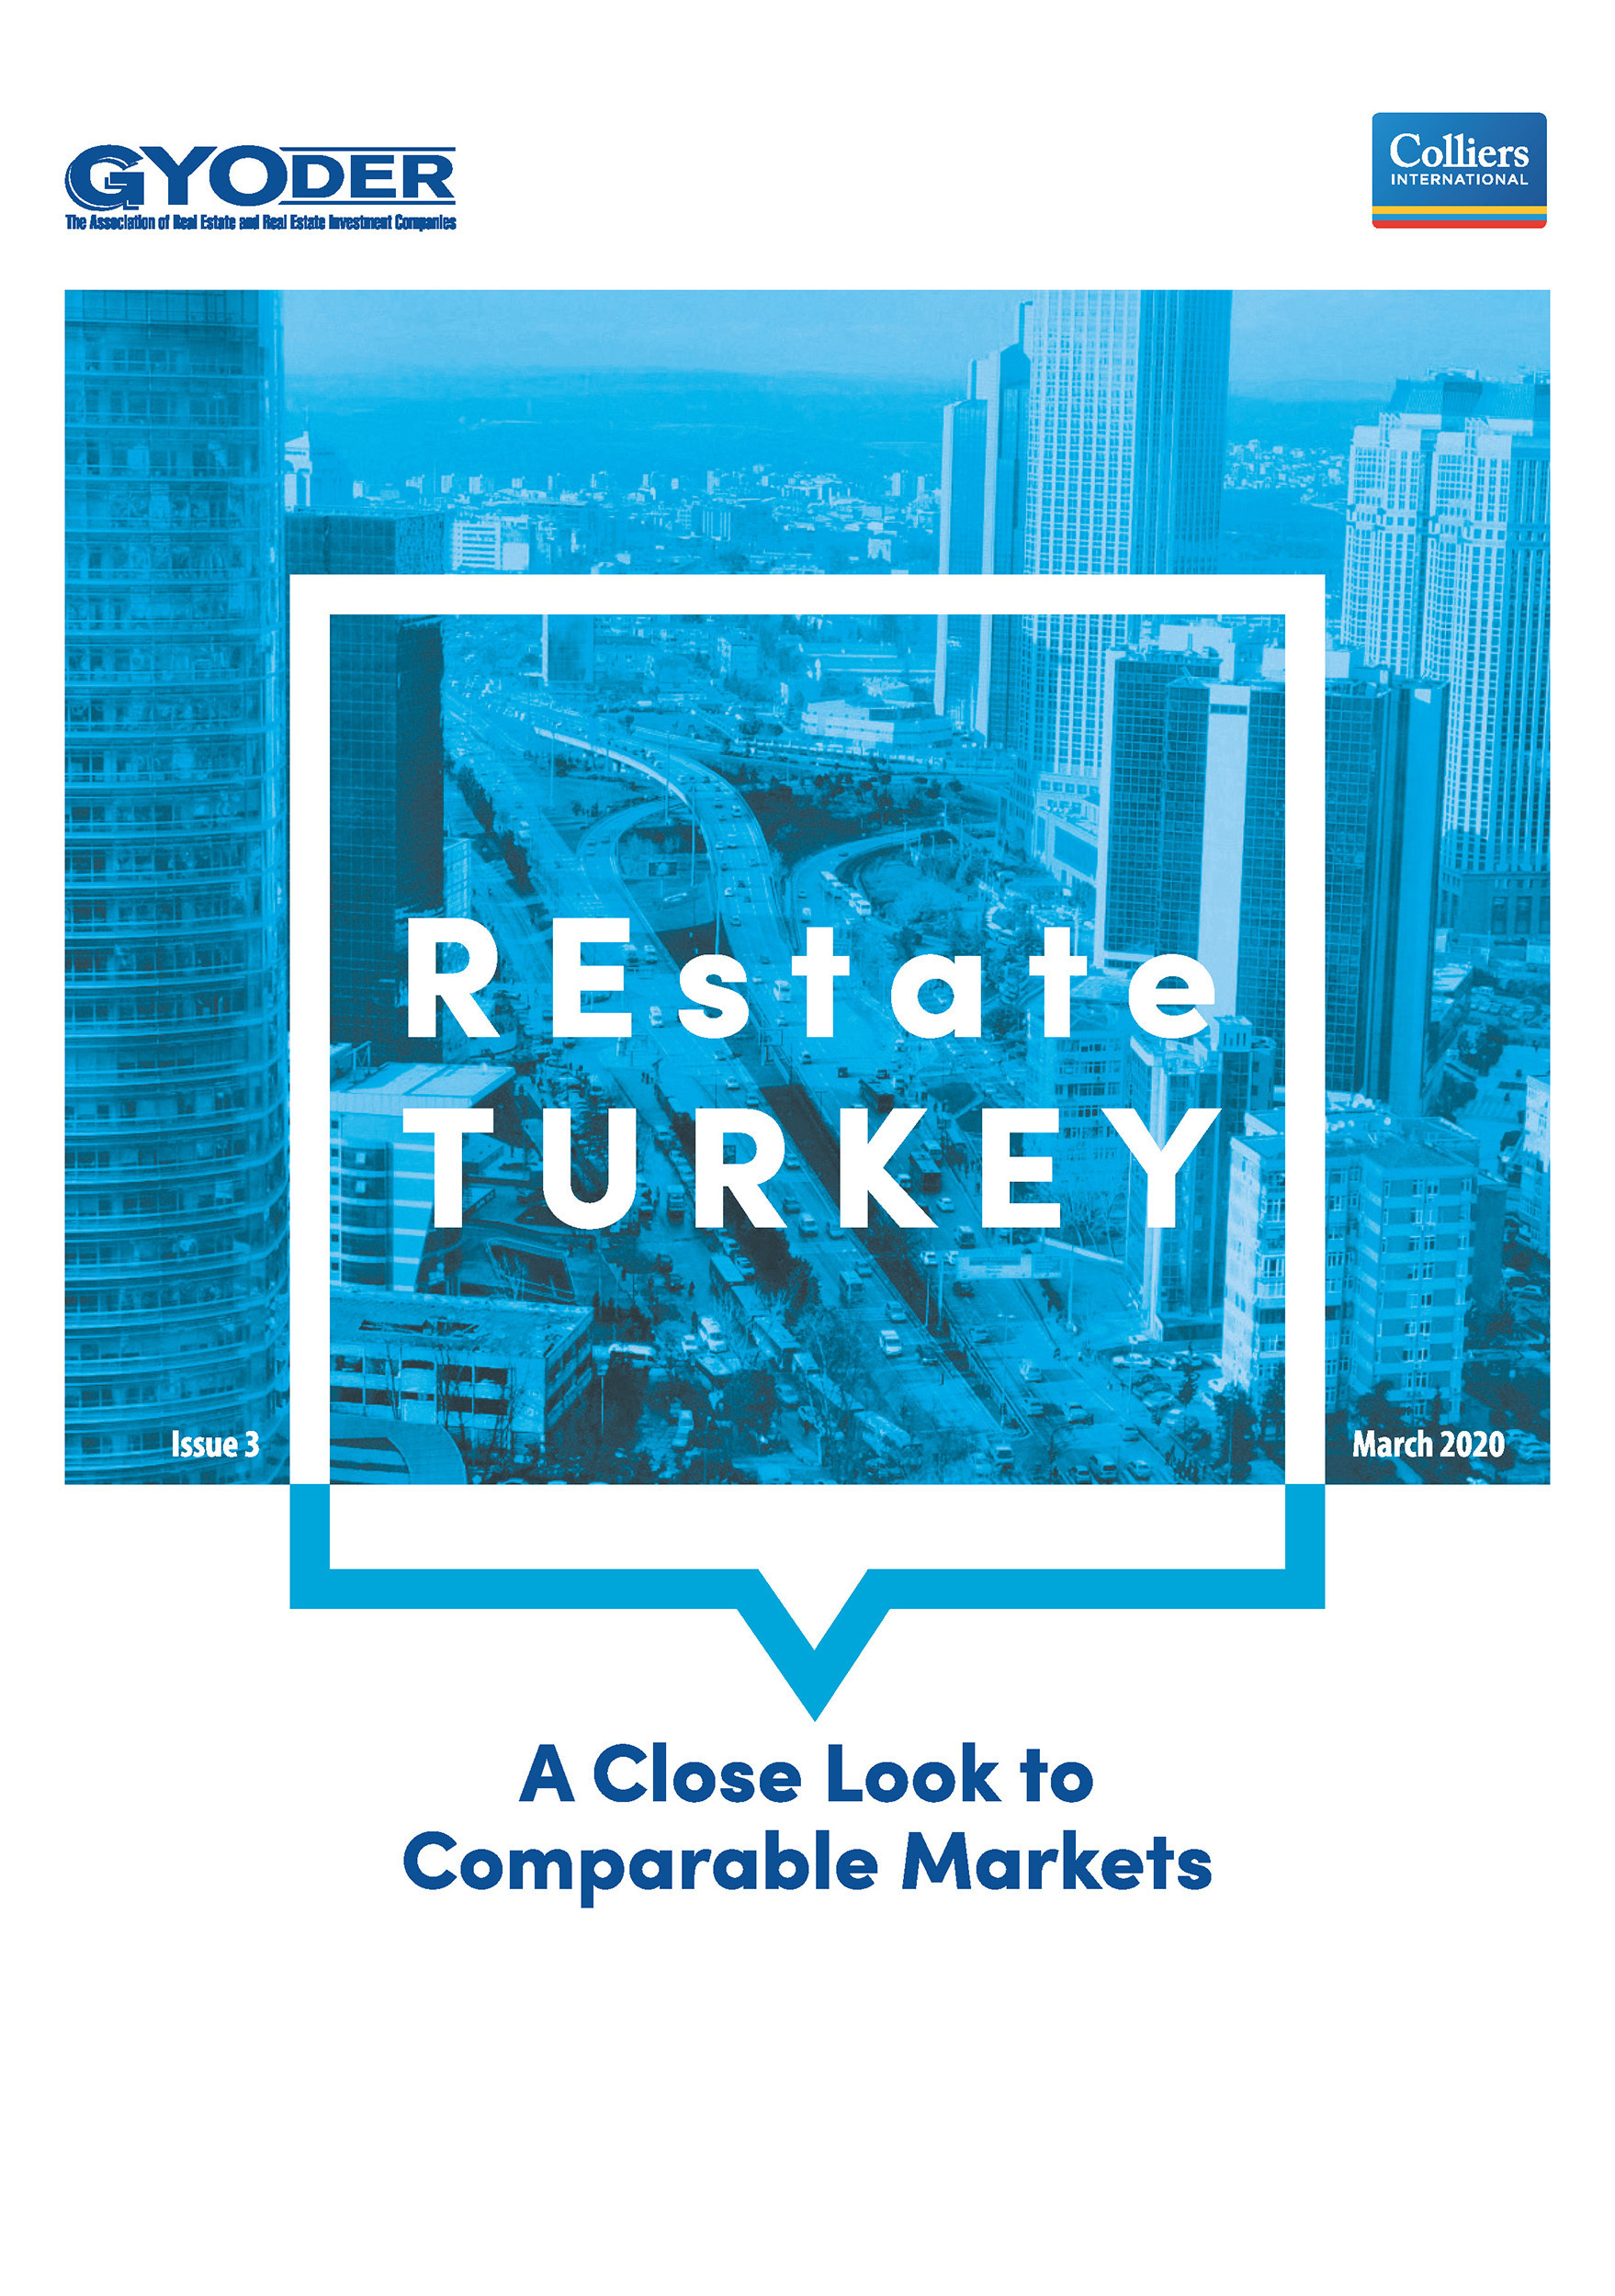 REstate Turkey - A Close Look to Comparable Markets / Issue 3